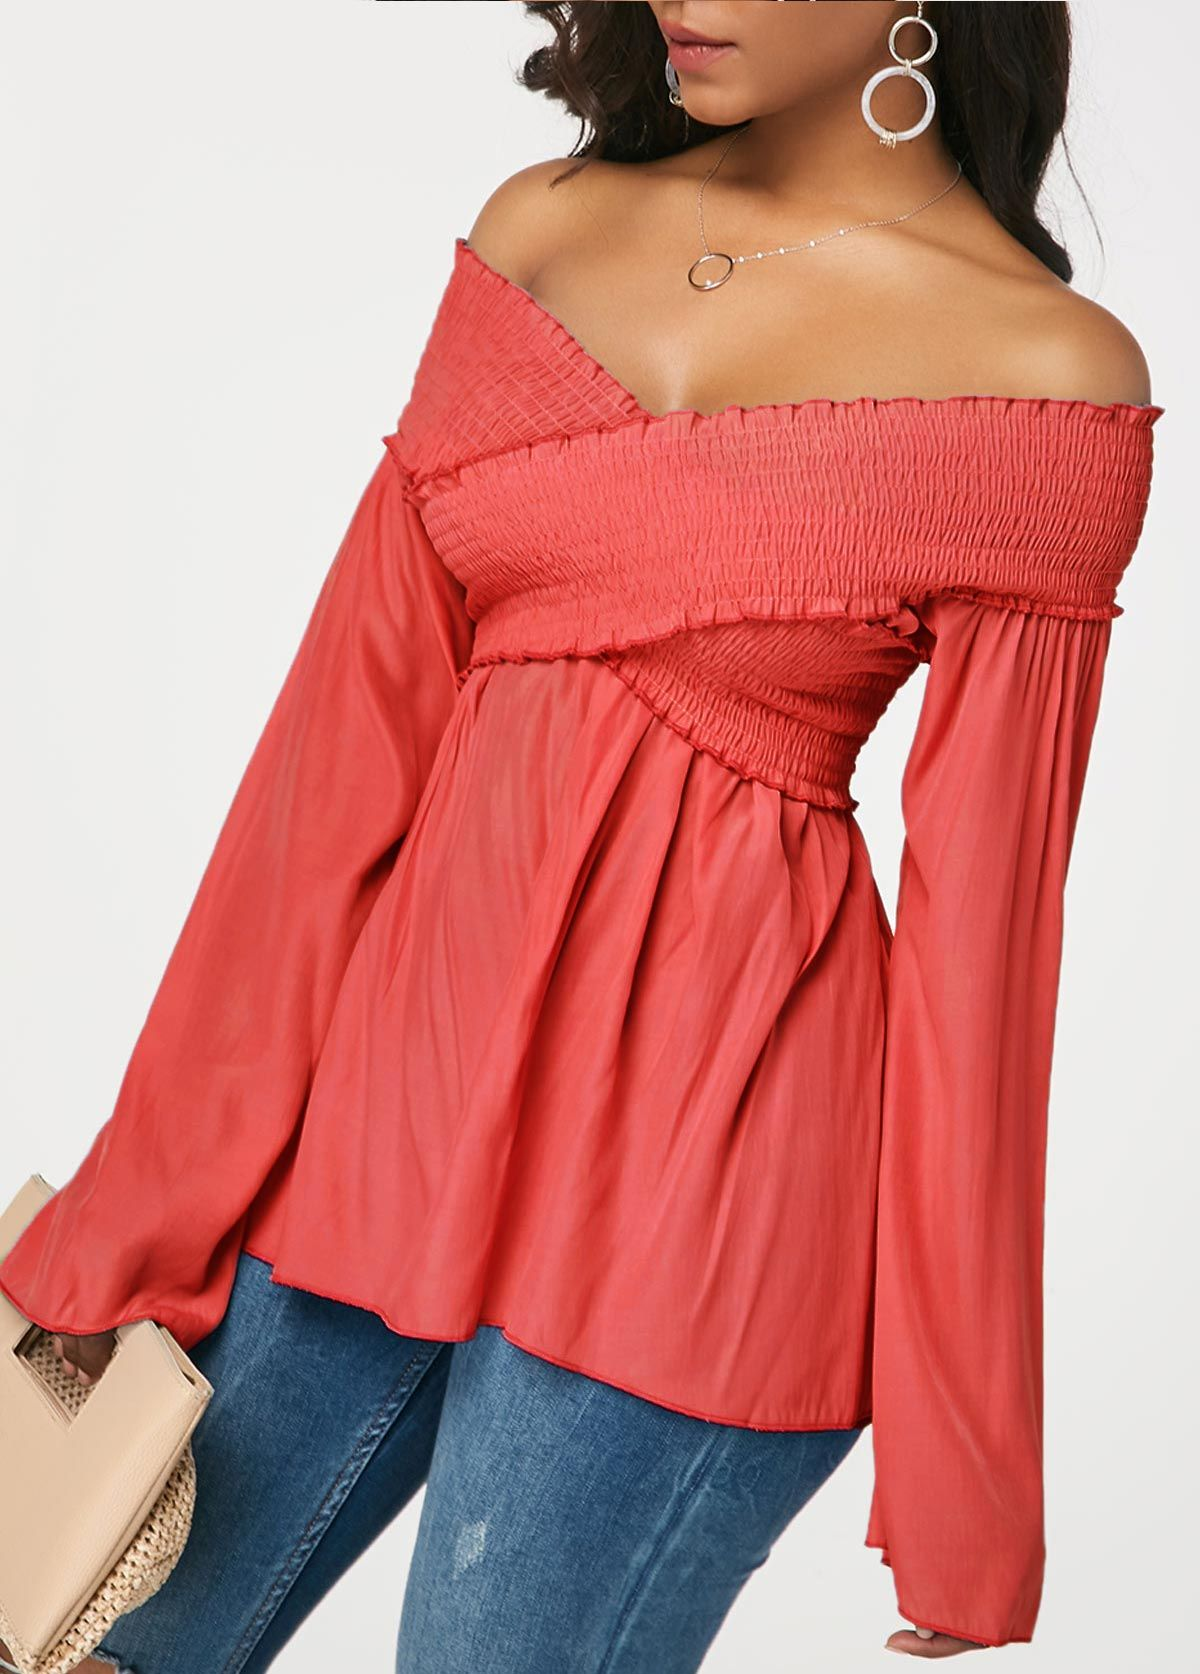 Crossover Shirred Peach Red Flare Sleeve Blouse Rosewe Com Usd 26 83 Fashion Ladies Tops Fashion Cute Blouses